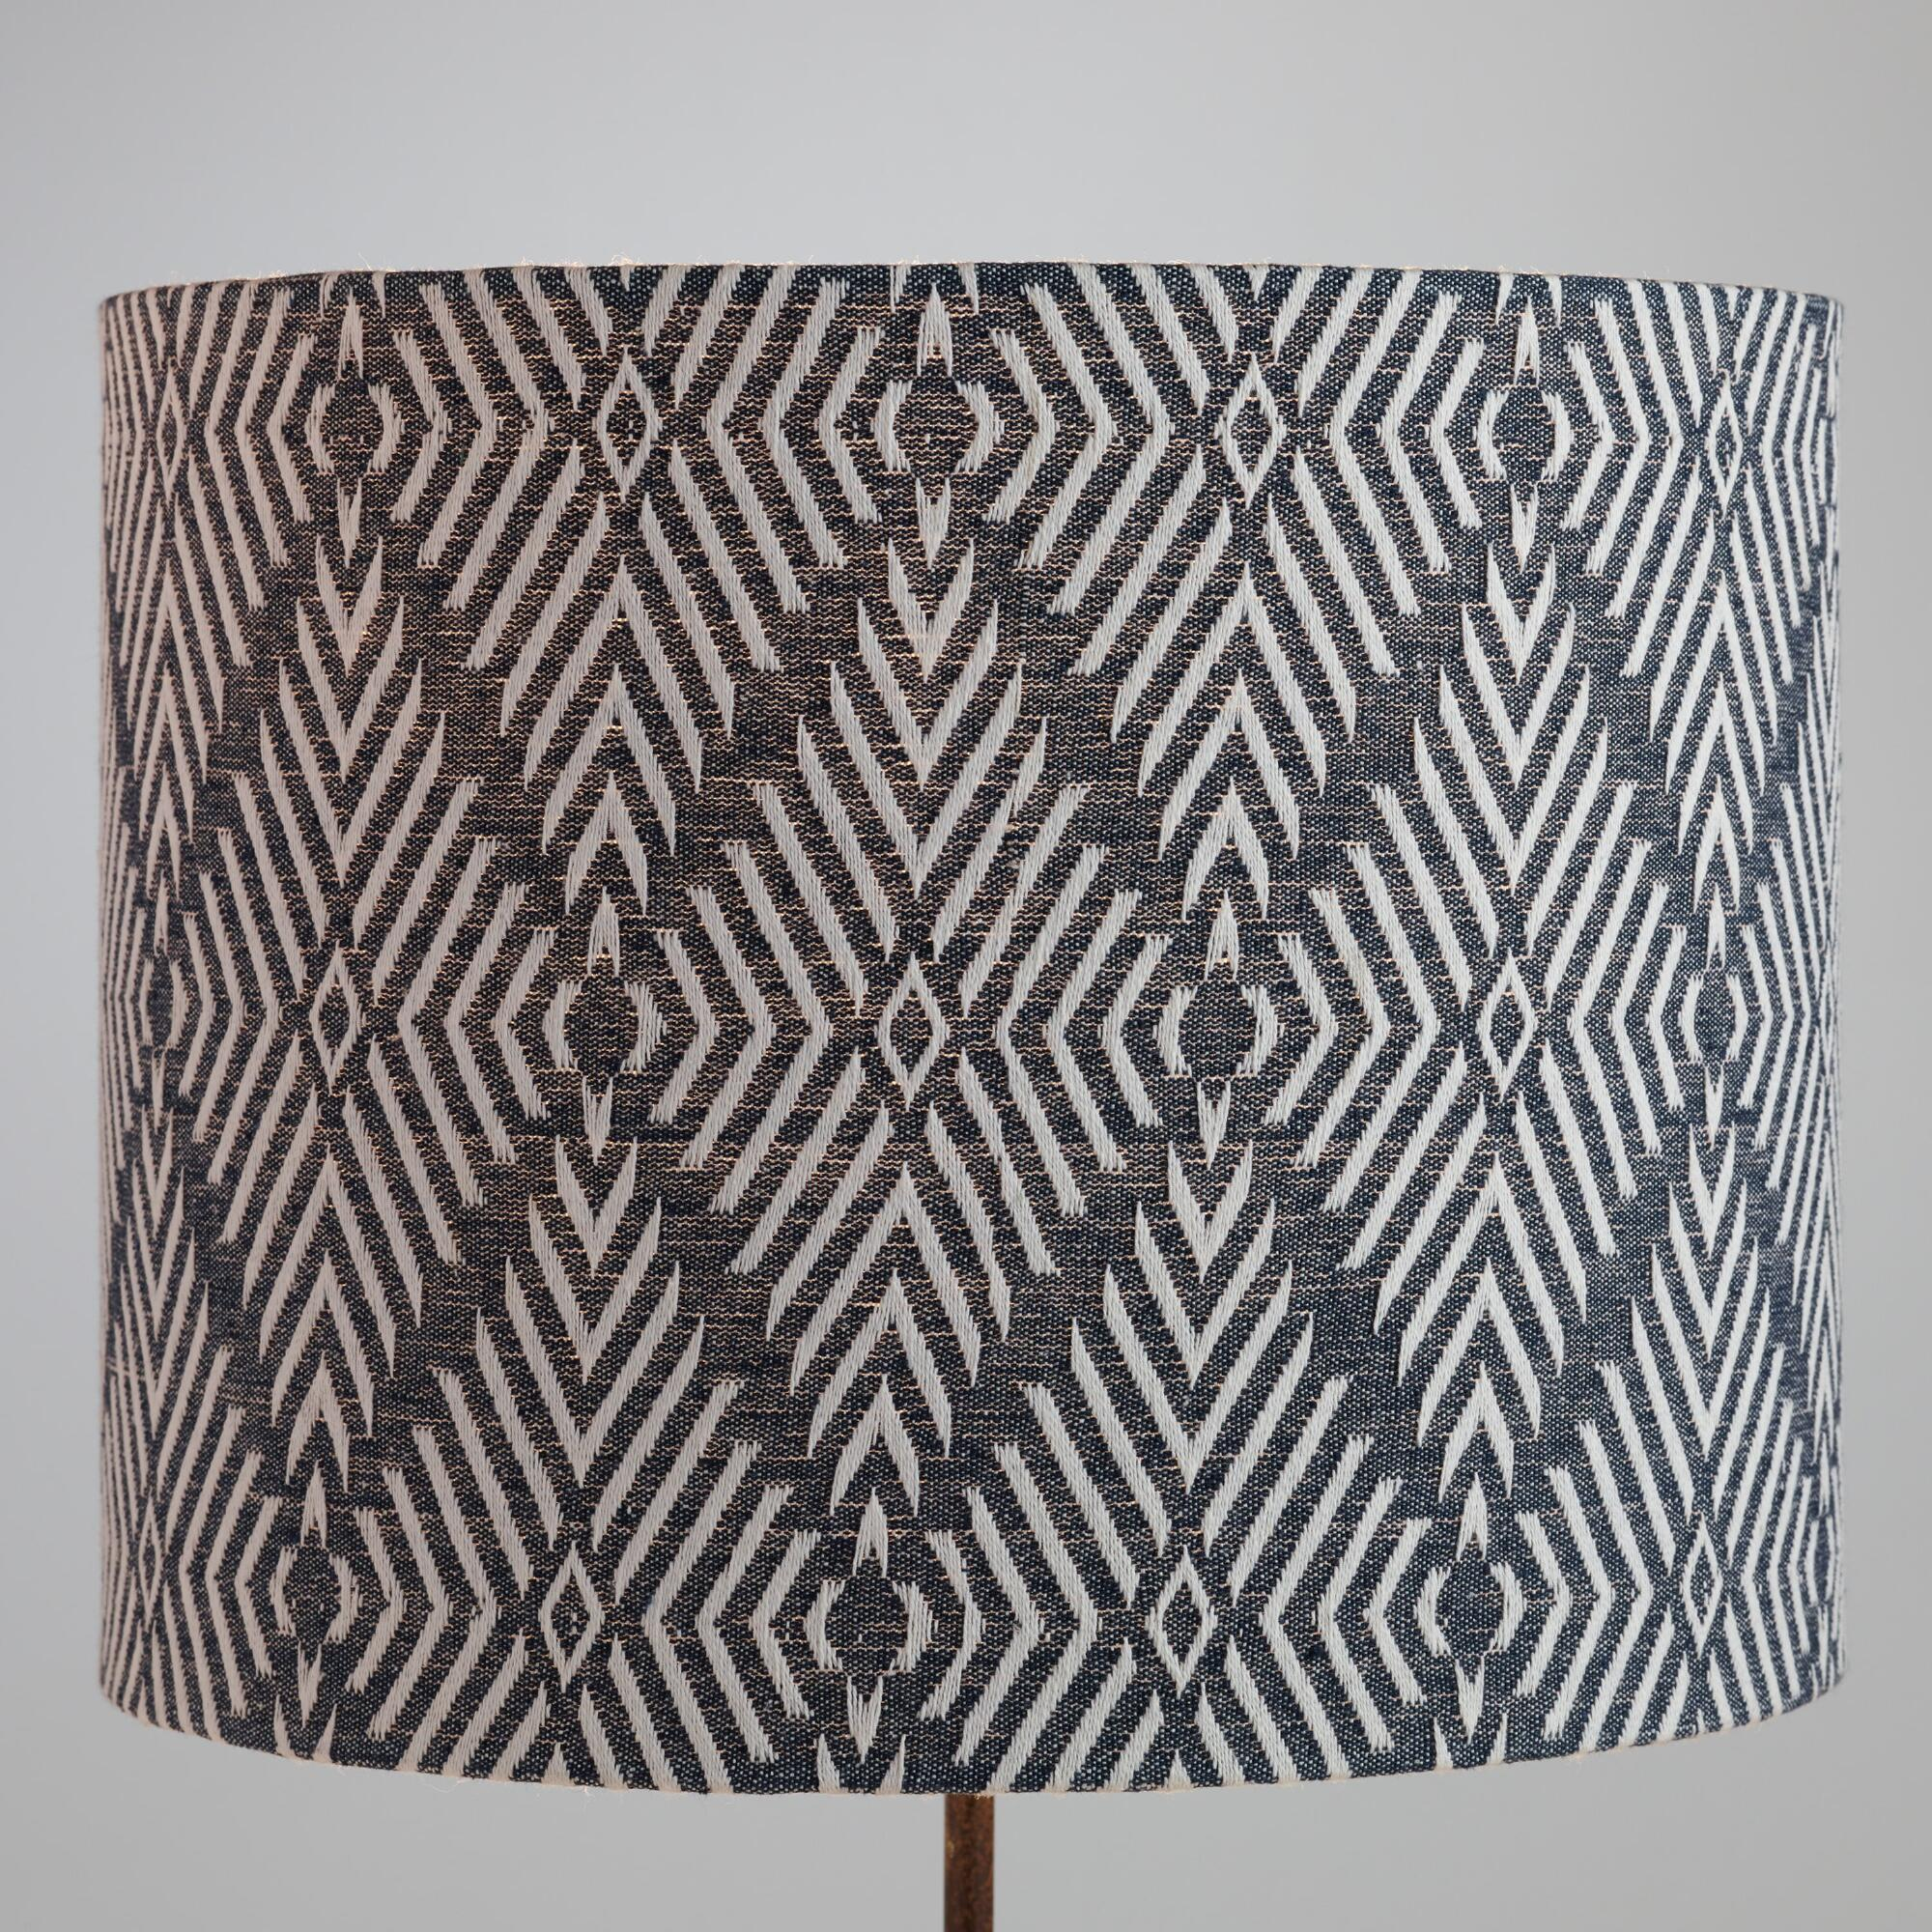 table top lamps unique lamp shades world market iipsrv fcgi miniature accent indigo tribal embroidered cotton drum shade door designs for rooms unfinished round end long living